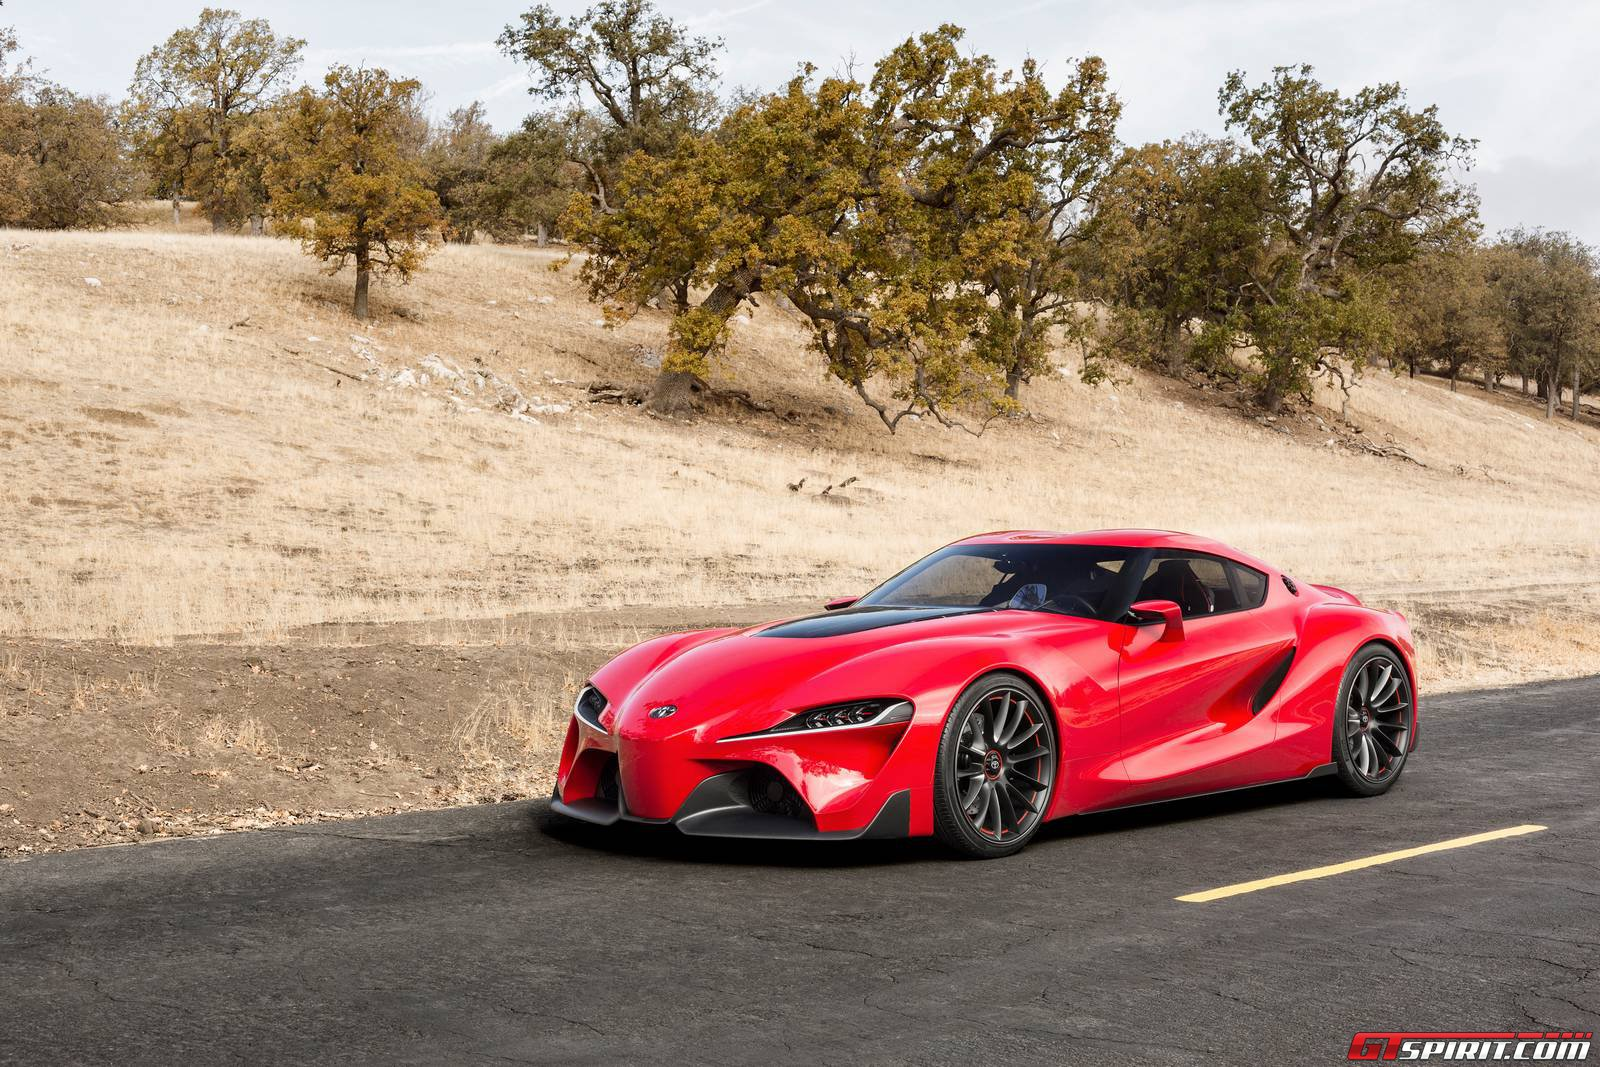 Exceptional Toyota BMW Collab To Spawn Z4 And Supra Replacements With Supercapacitors!